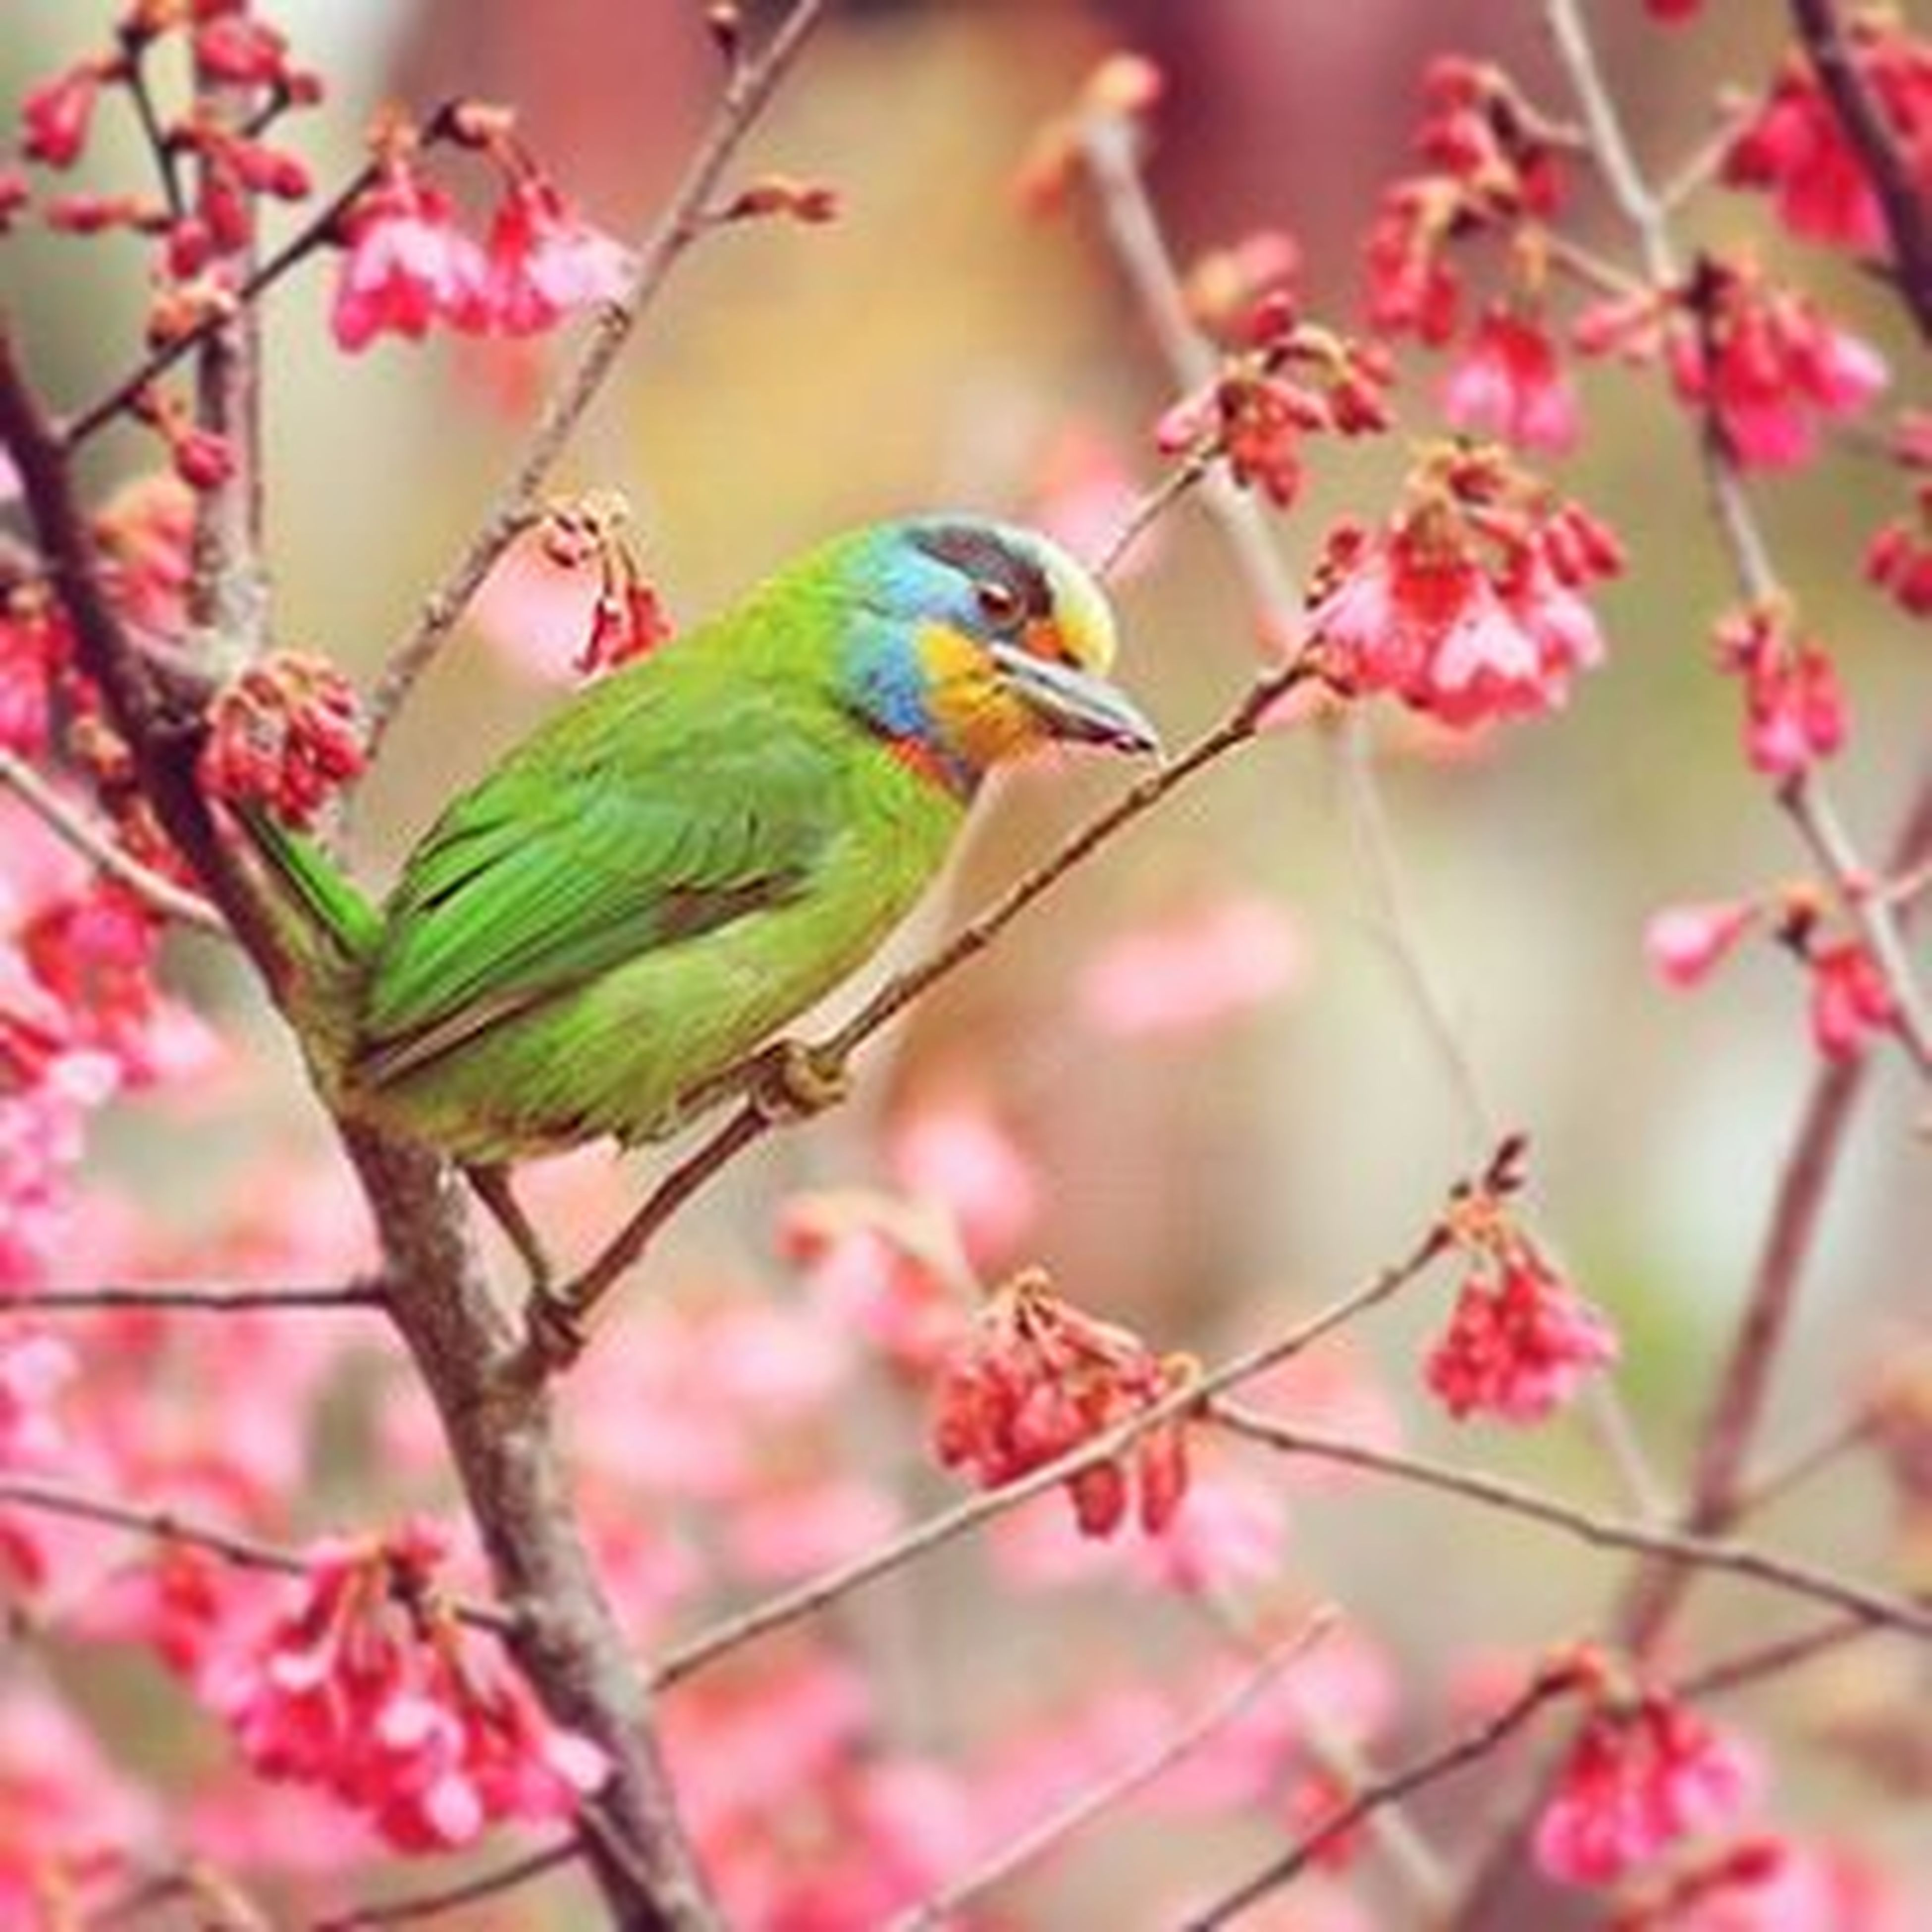 animal themes, one animal, bird, animals in the wild, flower, wildlife, branch, perching, focus on foreground, pink color, beauty in nature, nature, tree, freshness, growth, twig, close-up, outdoors, day, fragility